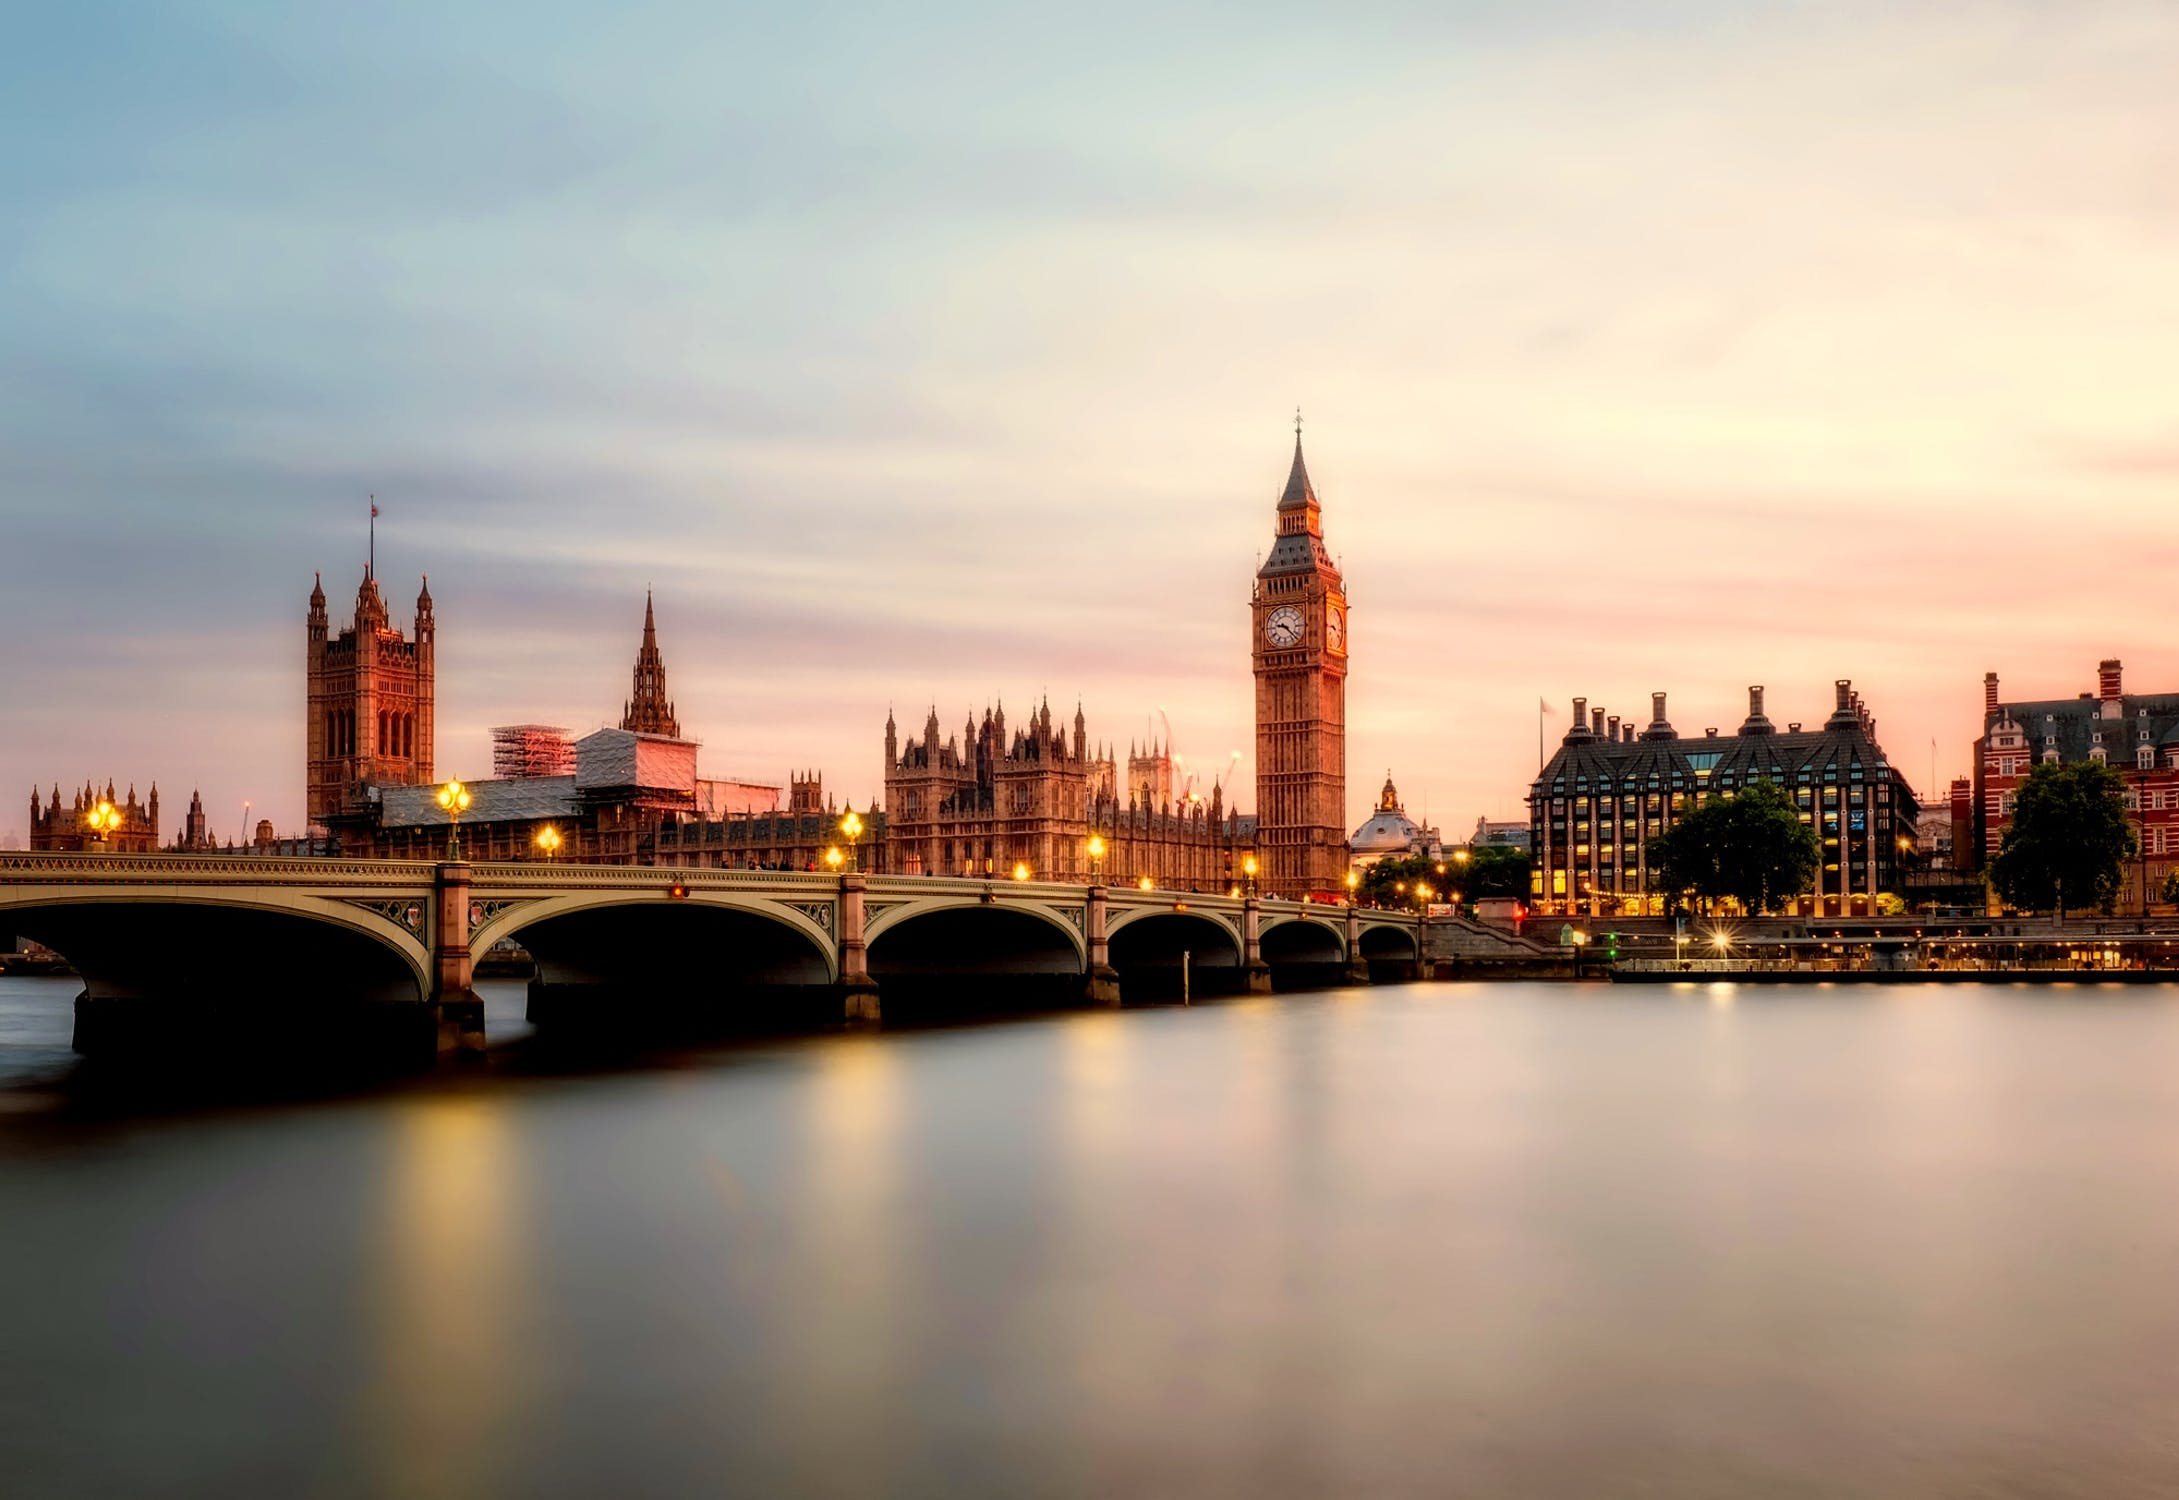 Big Ben and Westminster, the river Thames flowing under a bridge